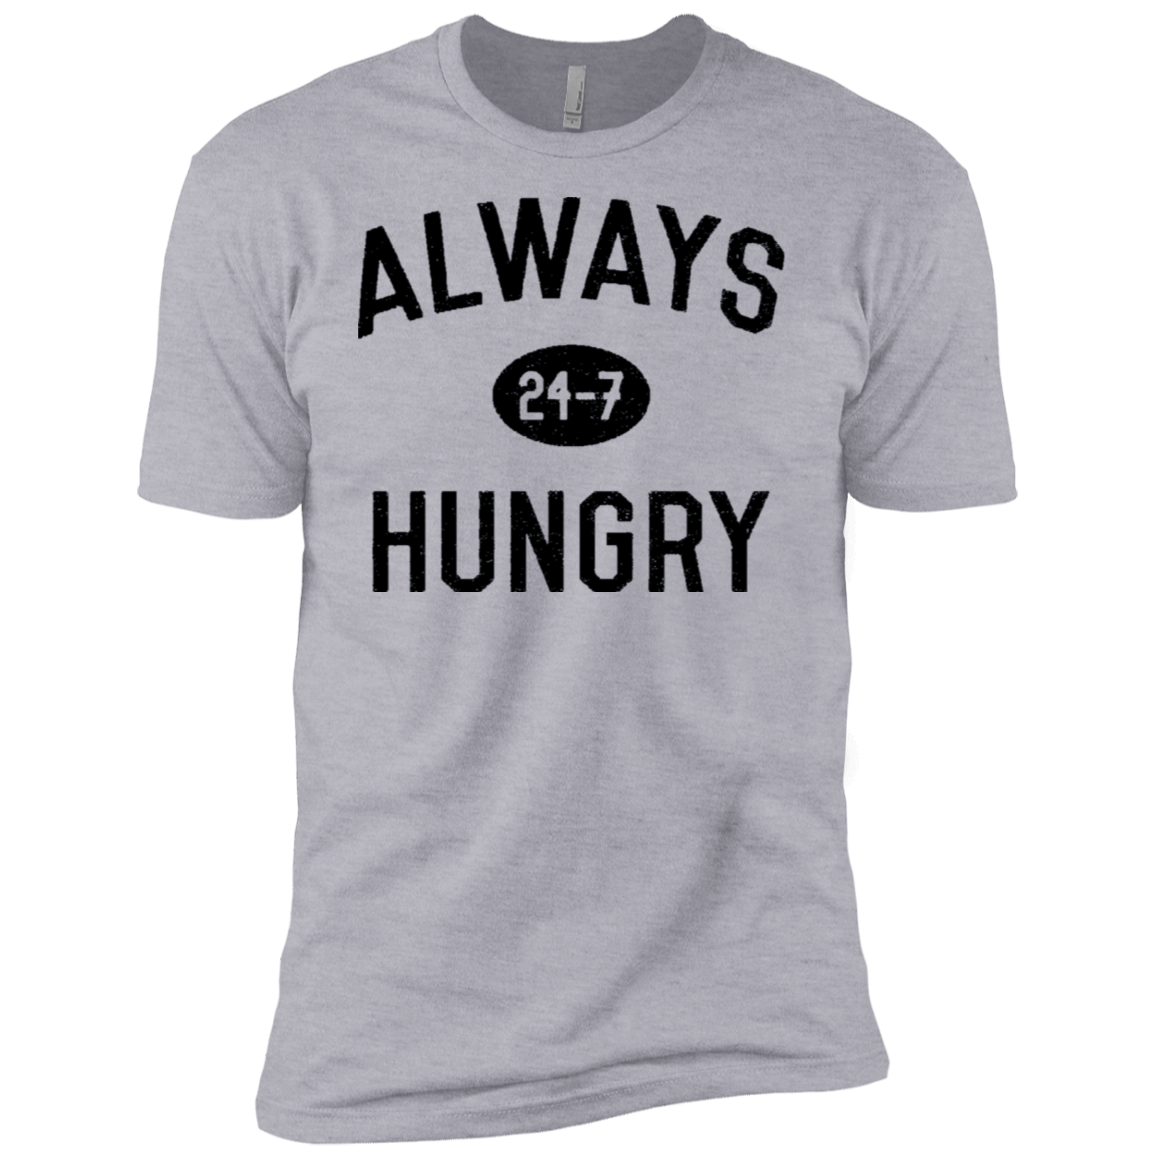 Hungry 247 Men's Classic Tee